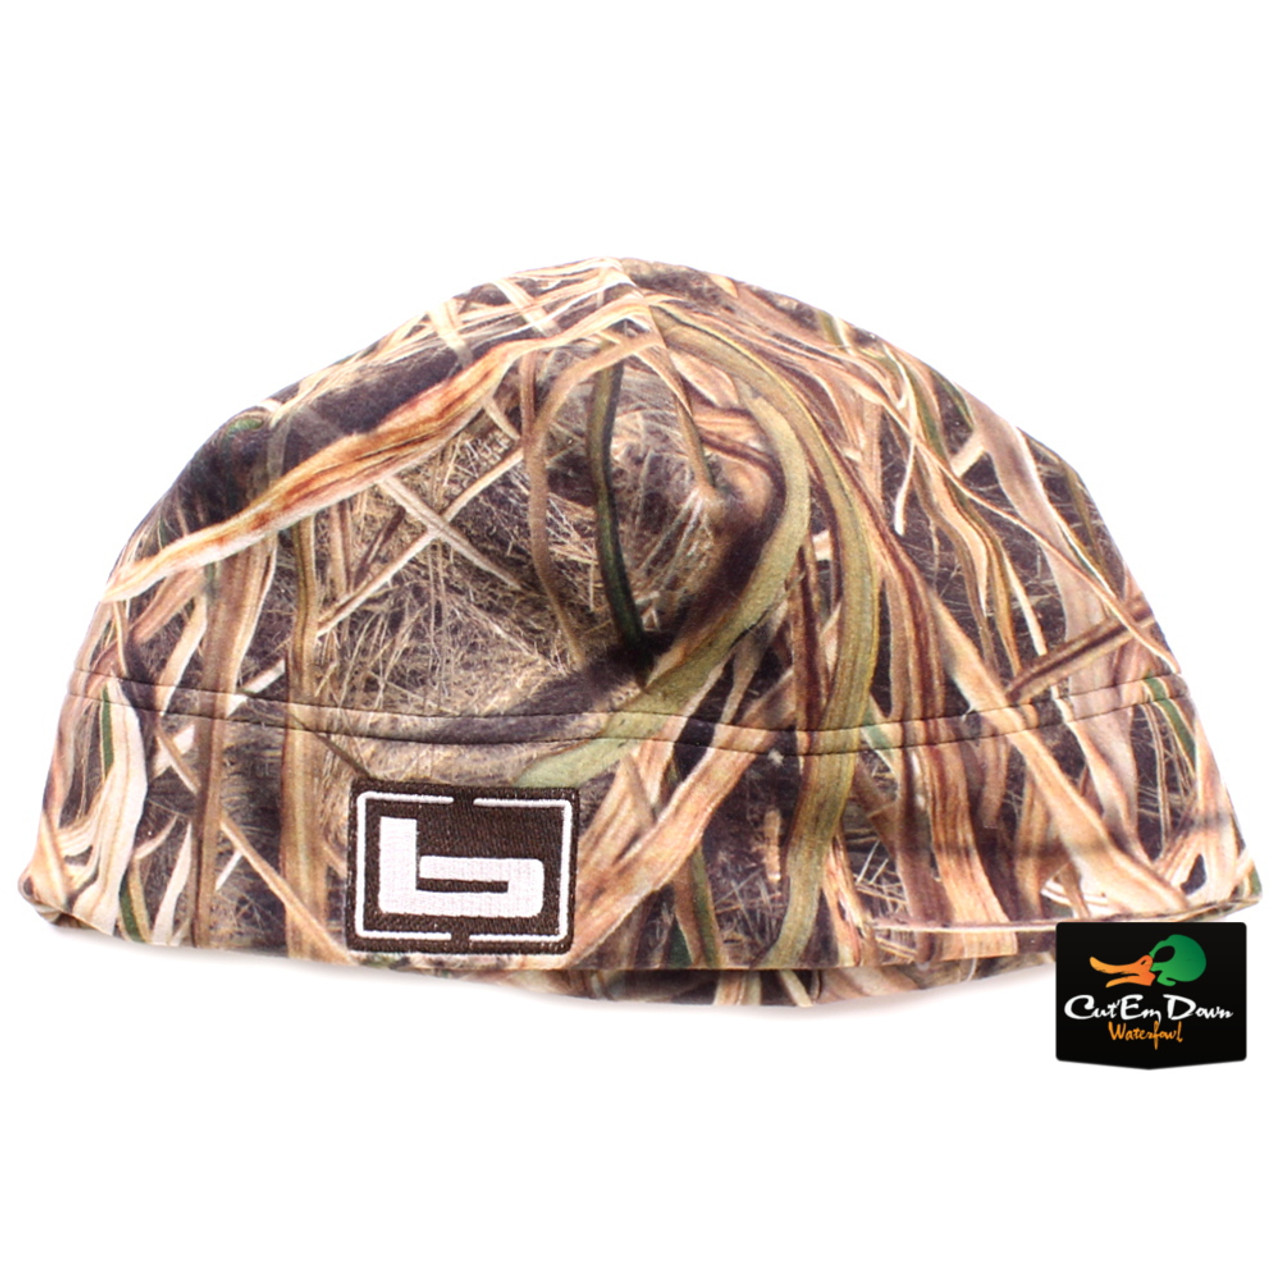 11f525666b7 Details about NEW BANDED GEAR UFS FLEECE BEANIE SKULL CAP HAT STOCKING b  LOGO BLADES CAMO